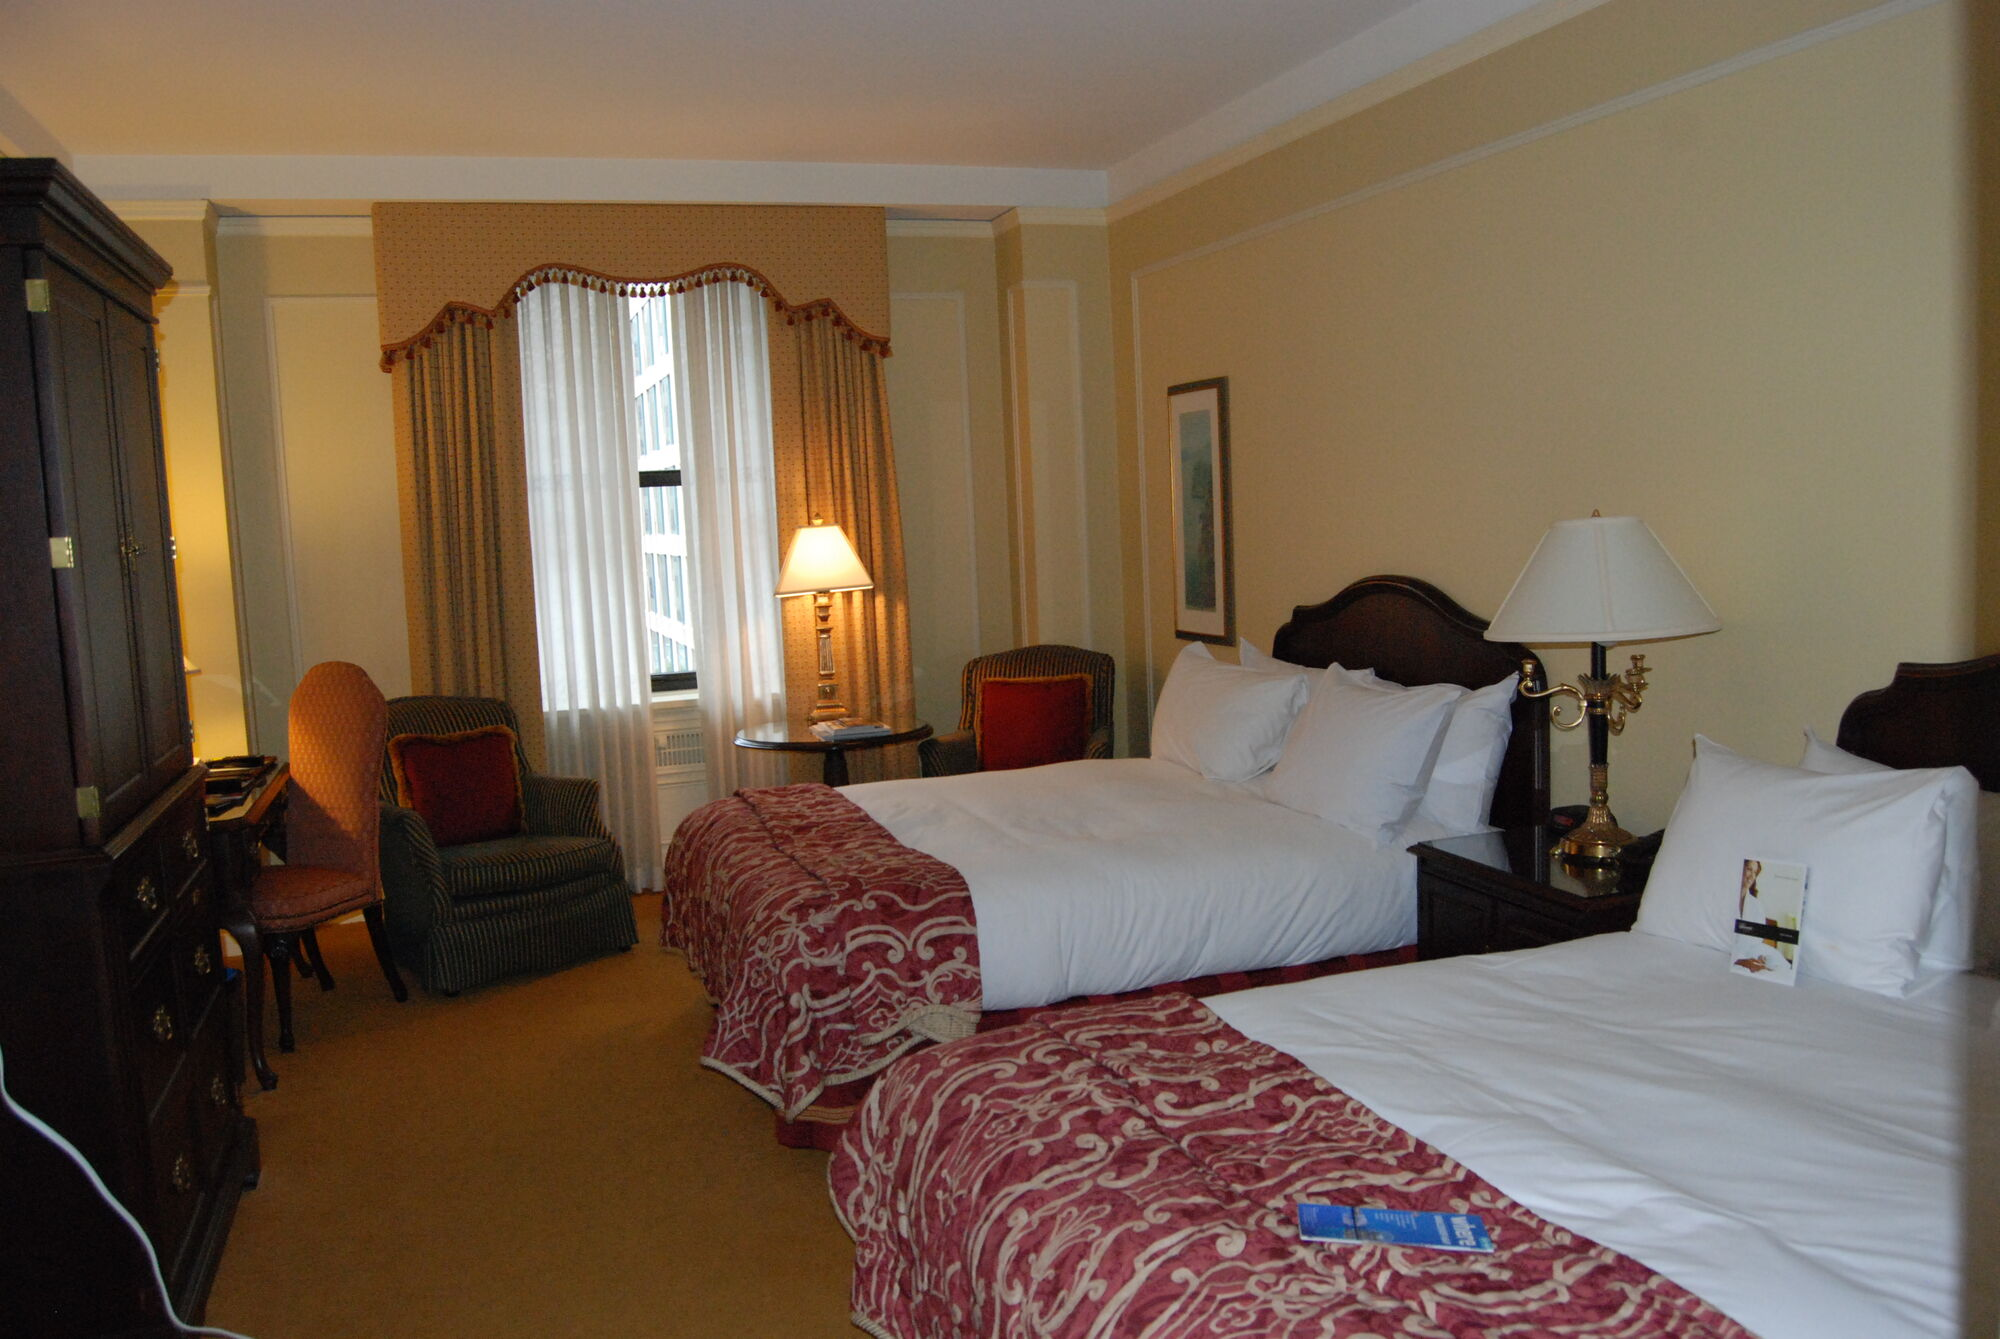 Room at Fairmont Hotel Vancouver